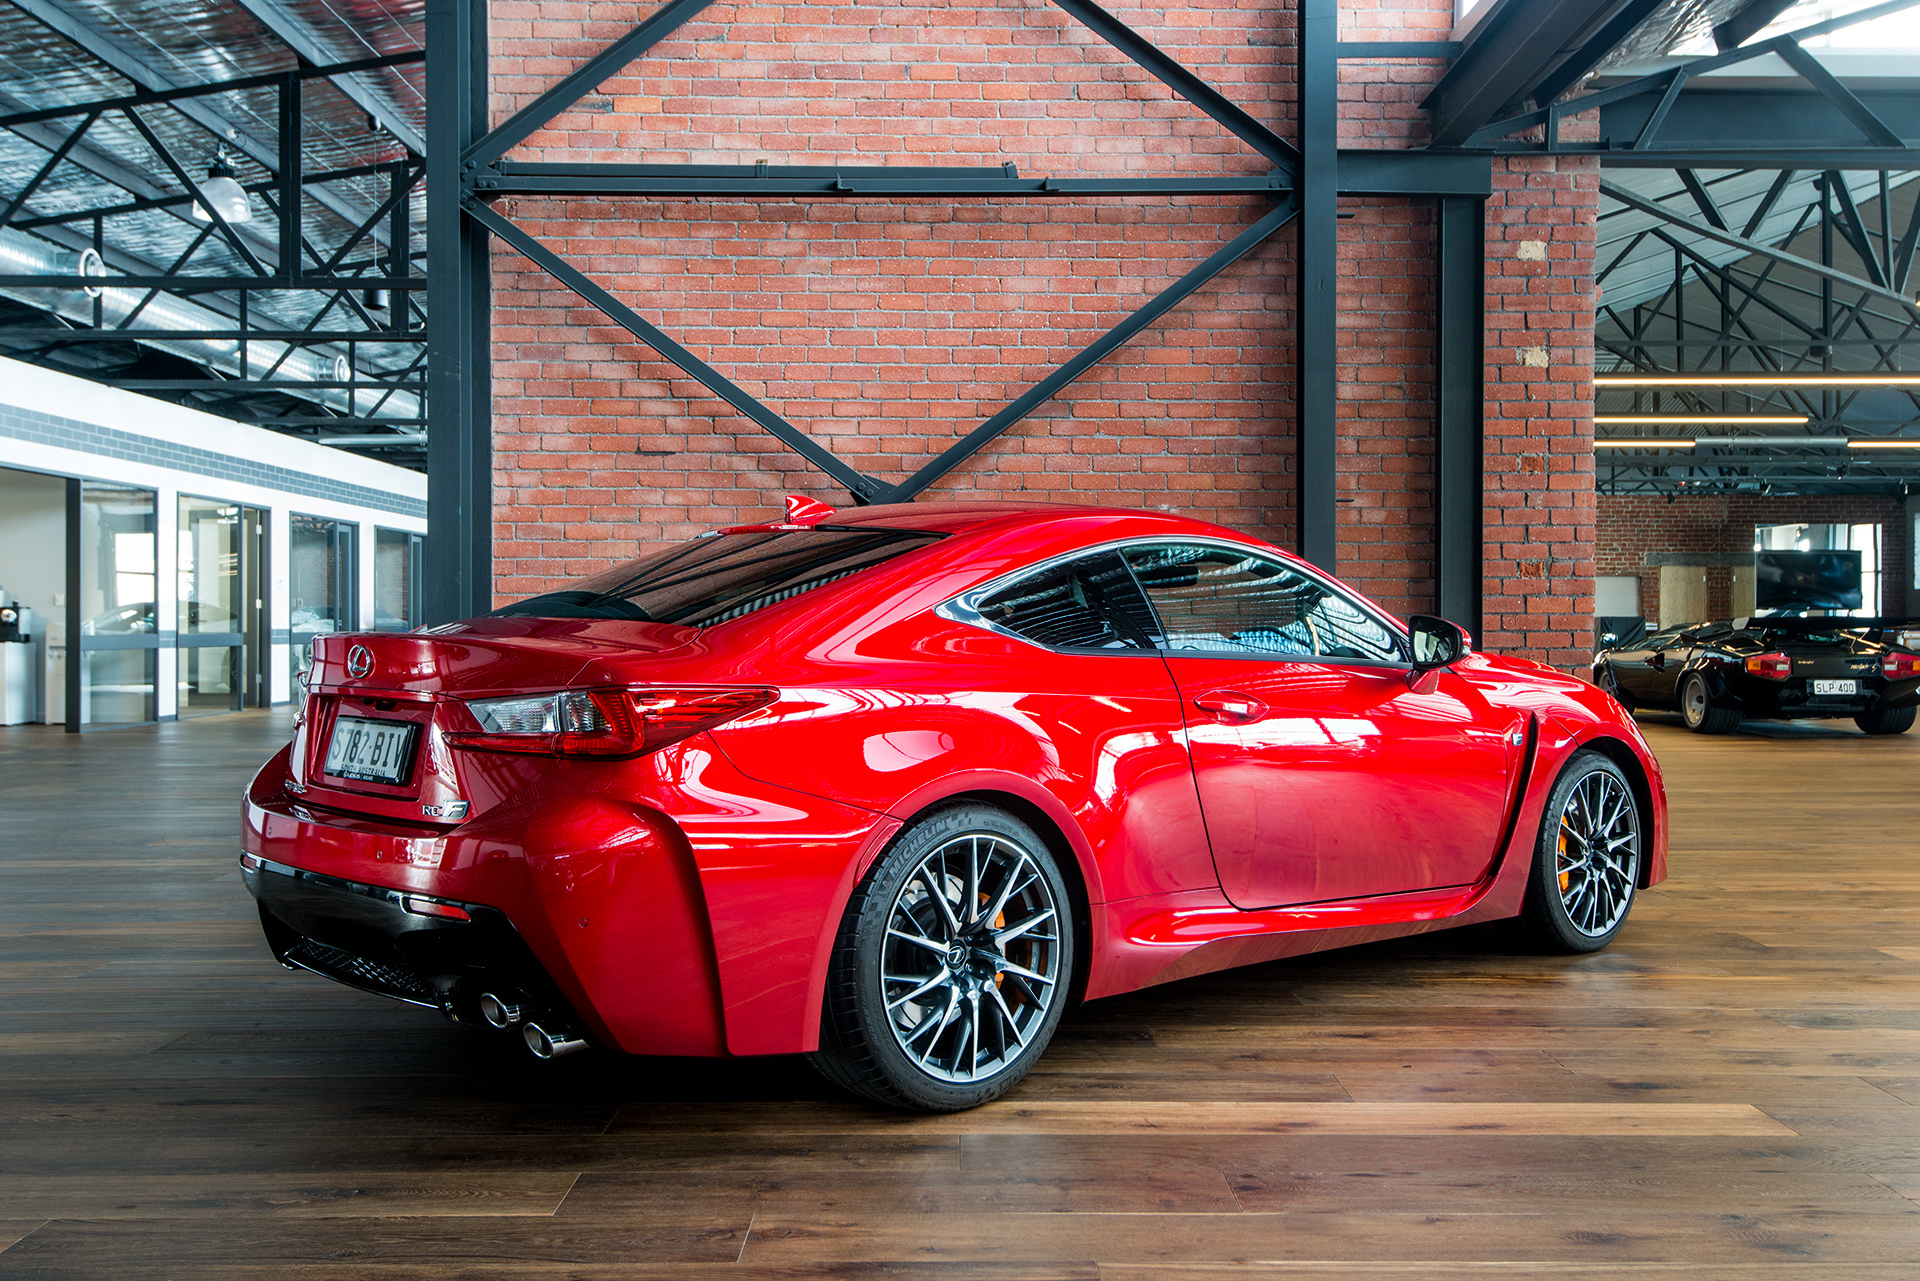 Car Exhaust System >> 2016 Lexus RCF Coupe - Richmonds - Classic and Prestige ...